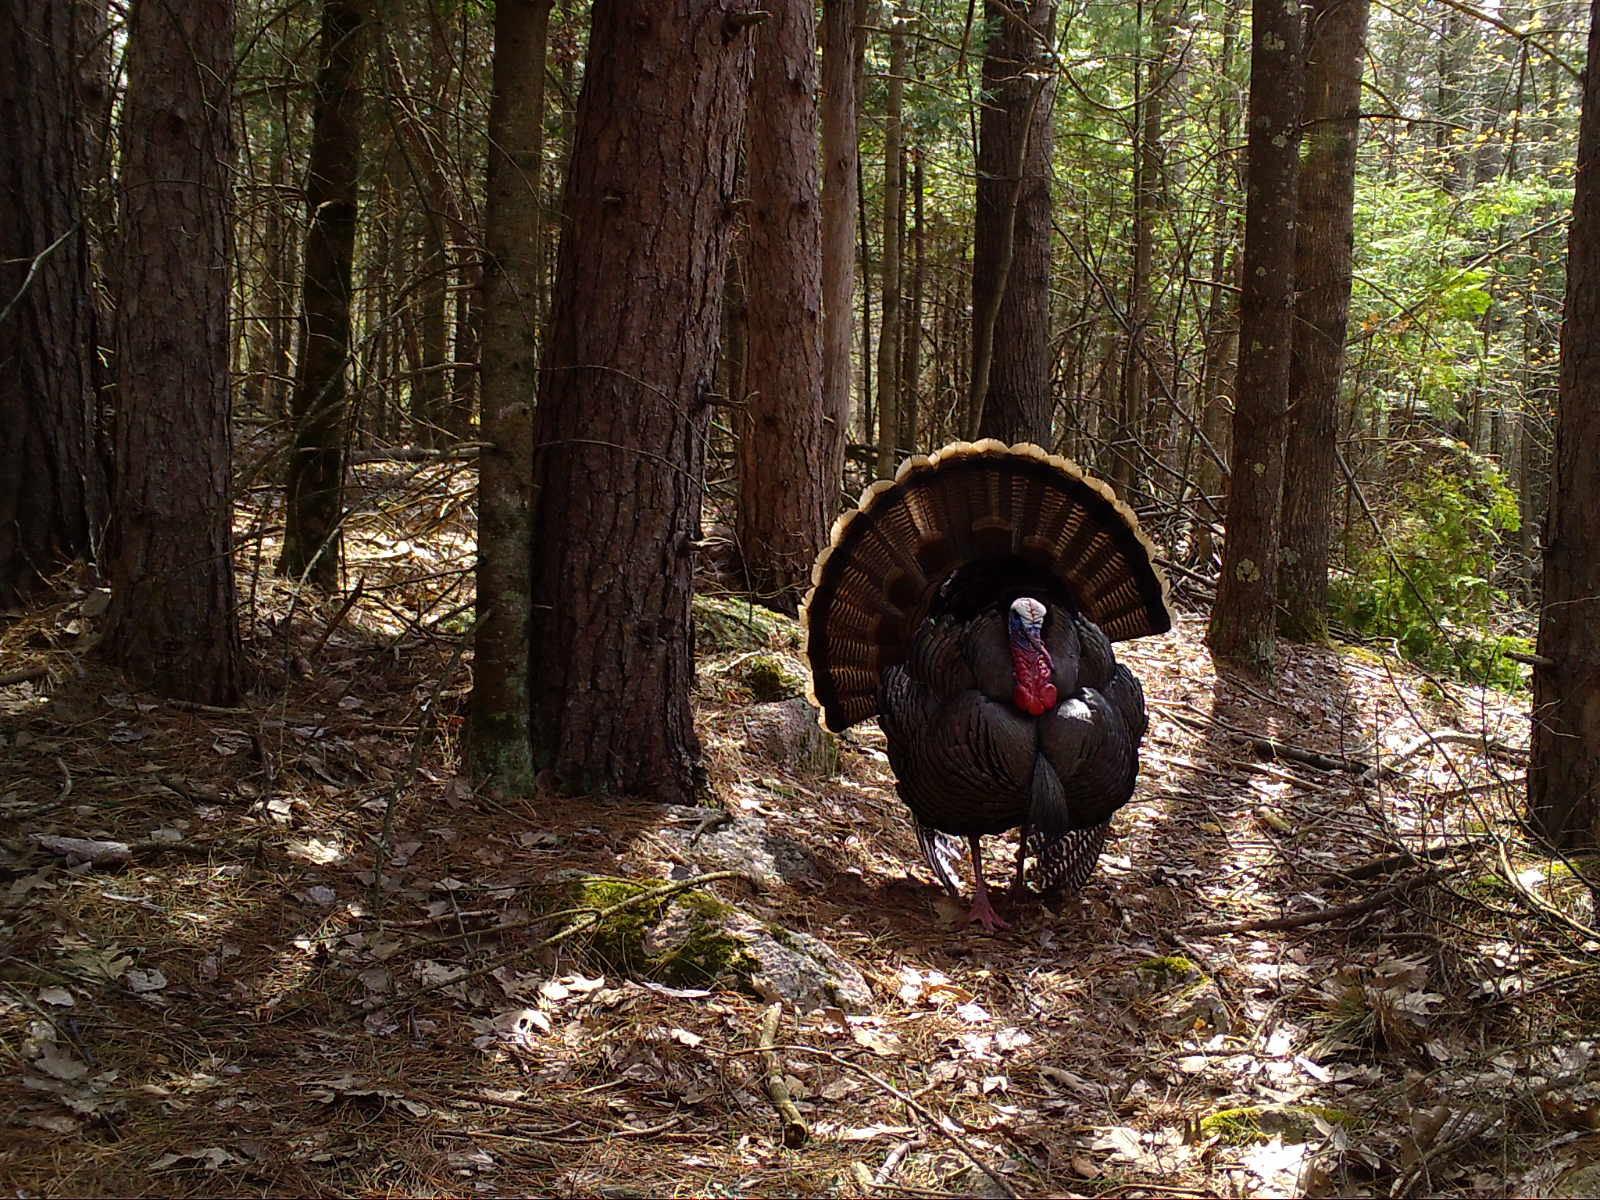 A tom turkey displaying its feathers in the woods